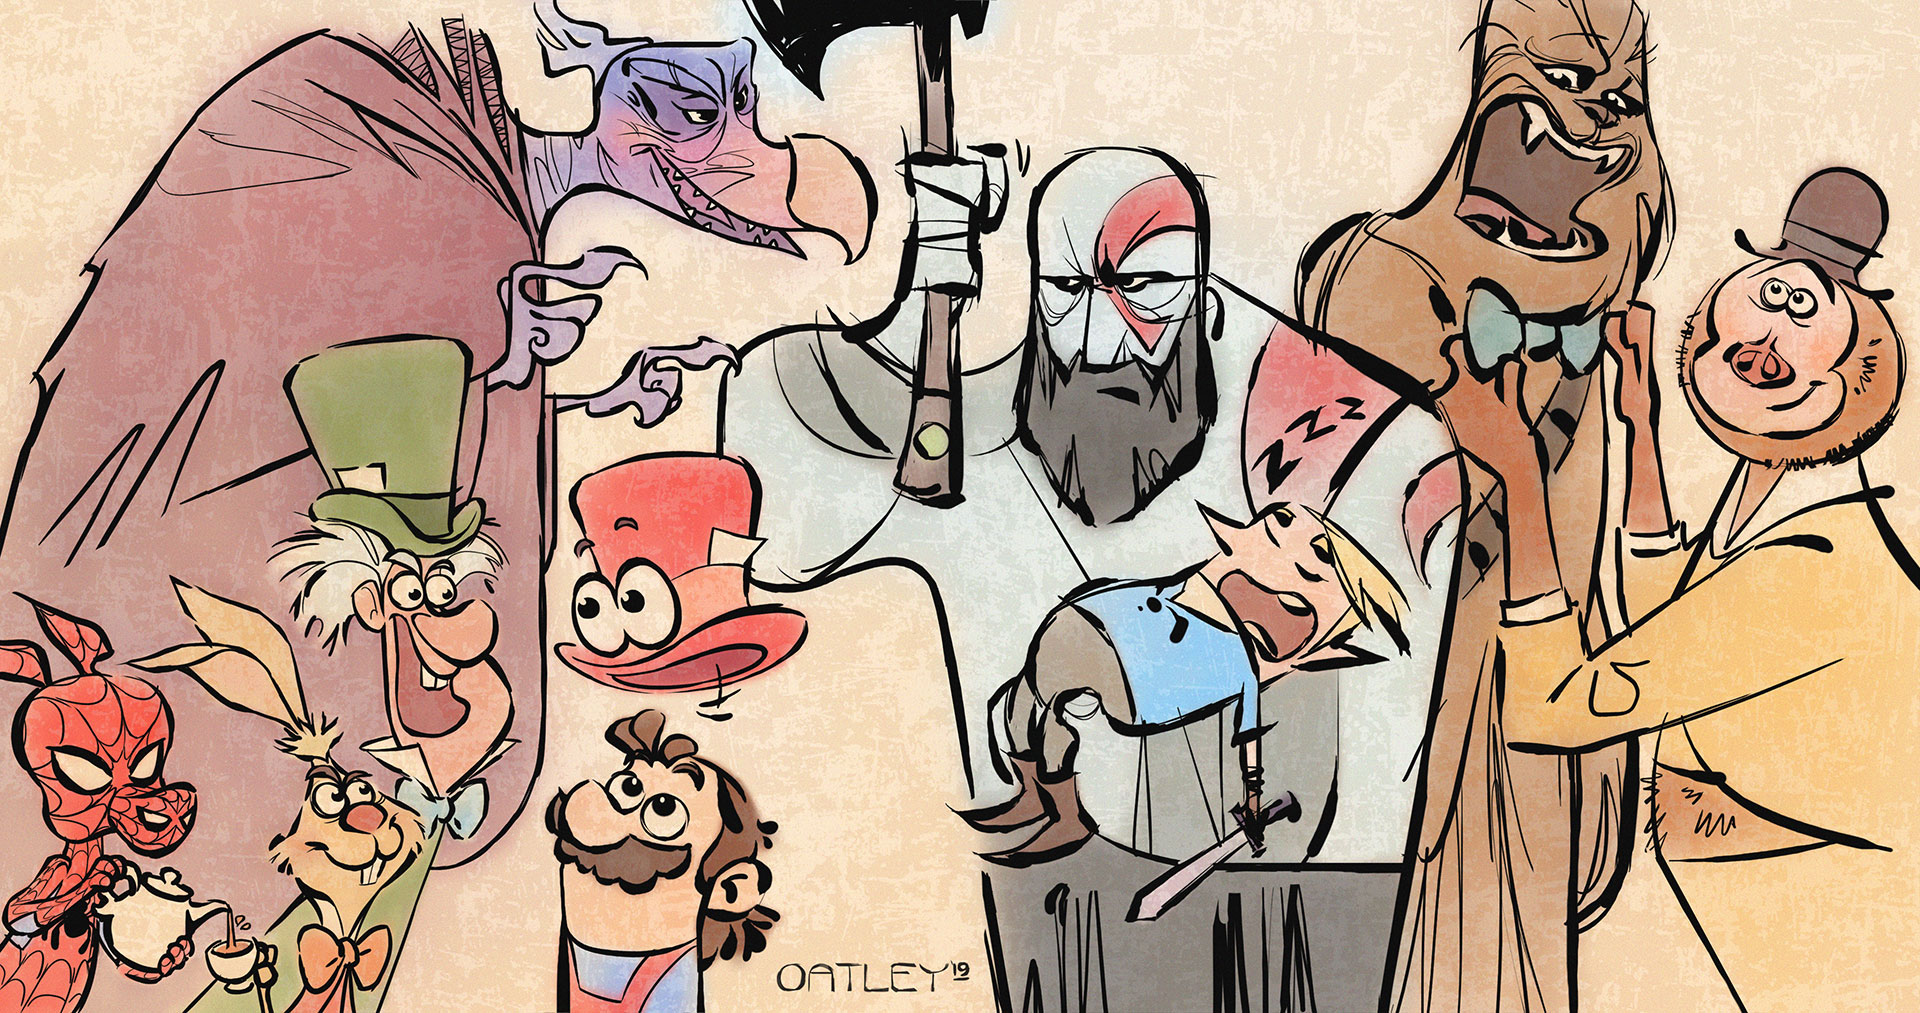 A cartoony, fan-art-mash-up drawn in gloppy, black ink lines and colored in soft, pastel hues, features characters from each of our 'Best New Concept Art Books' review. Kratos cradles a sleeping Link while fending off a hungry Skeksis. Cappy floats above Mario's head, transforming into The Mad Hatter's hat while the March Hare looks on, impressed. Spider-Ham pours the tea while Mr. Link lends his signature bowtie to Chewbacca.